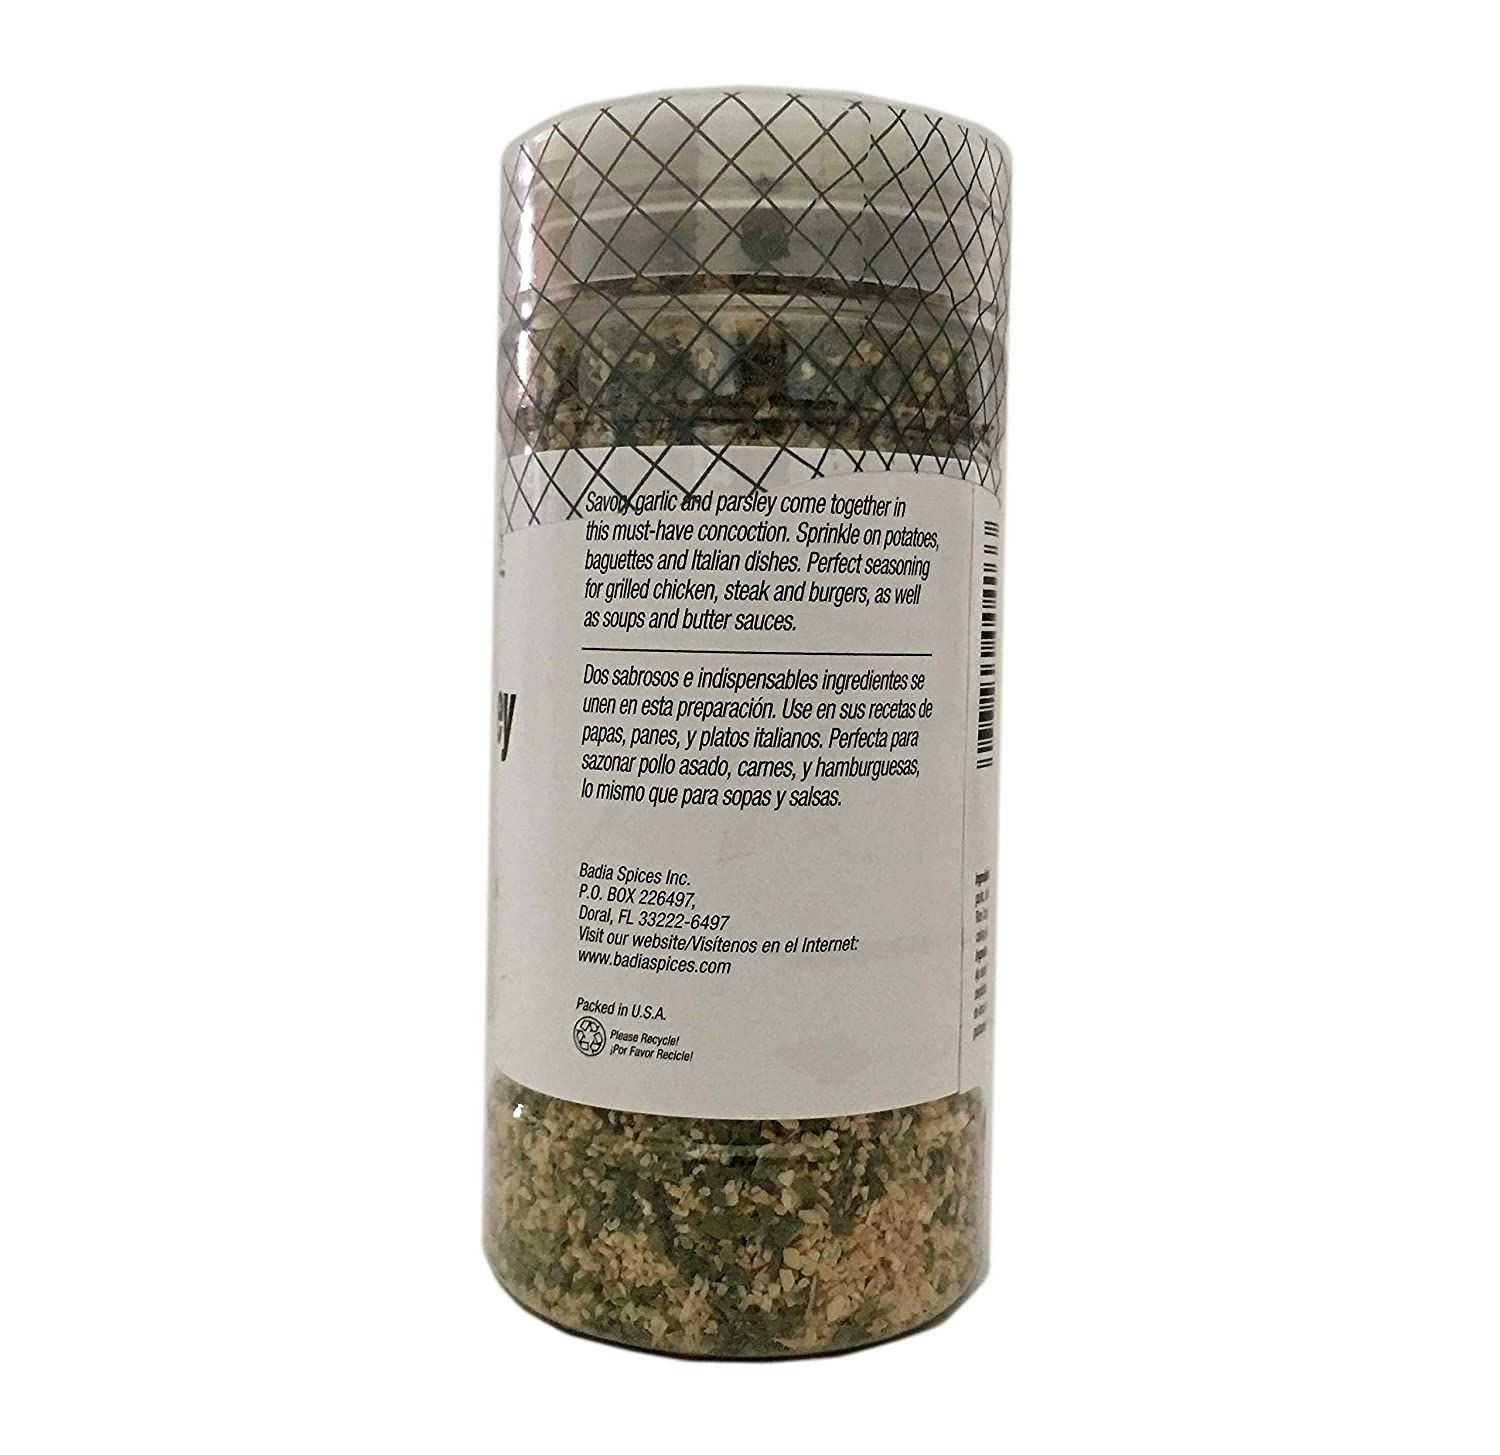 Amazon.com : 5 oz-Bottle Ground Garlic and Parsley Seasoning/Ajo Molido y Perejil Kosher : Grocery & Gourmet Food